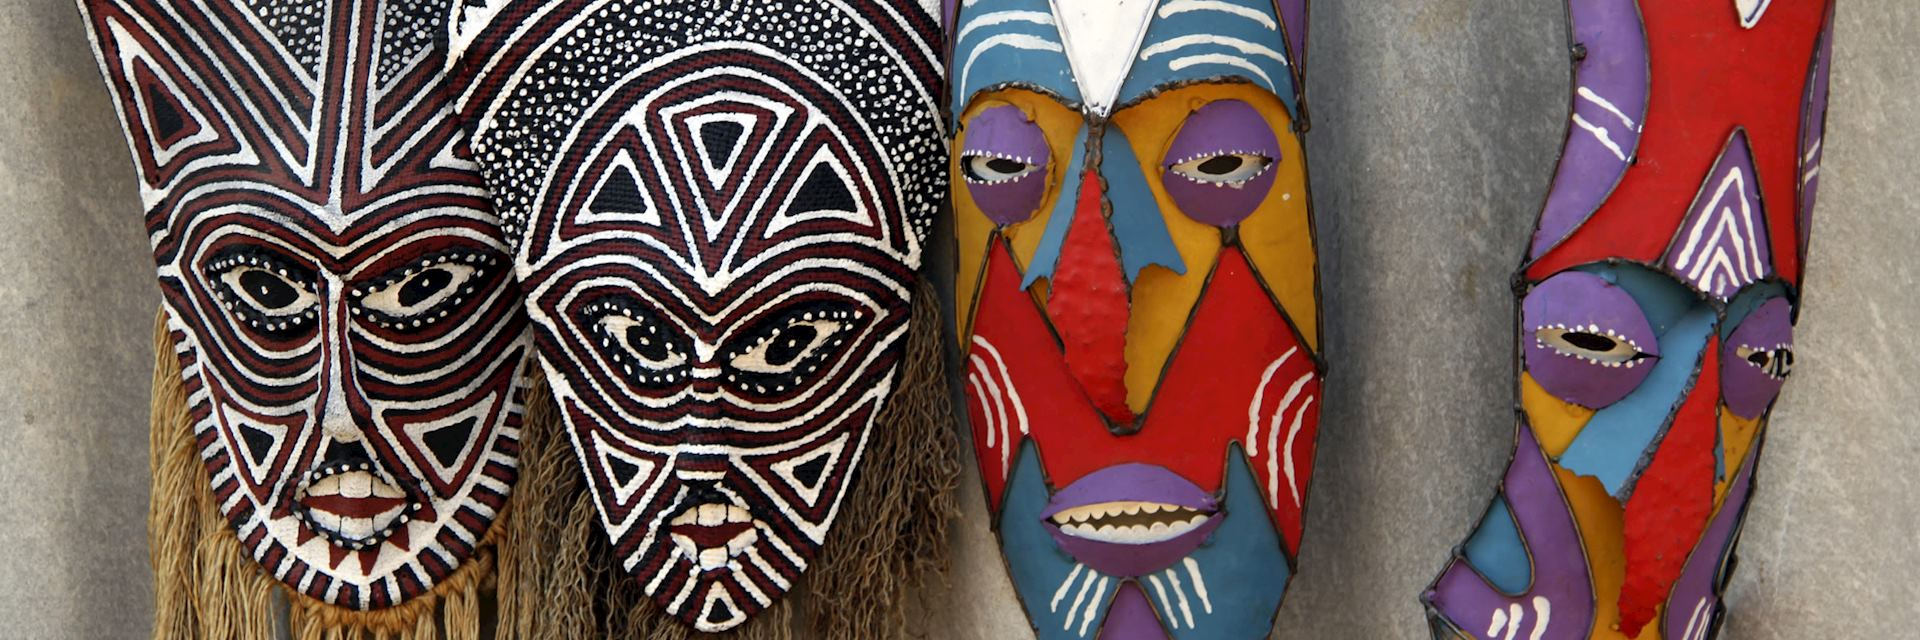 Tribal masks in a zimbabwean market